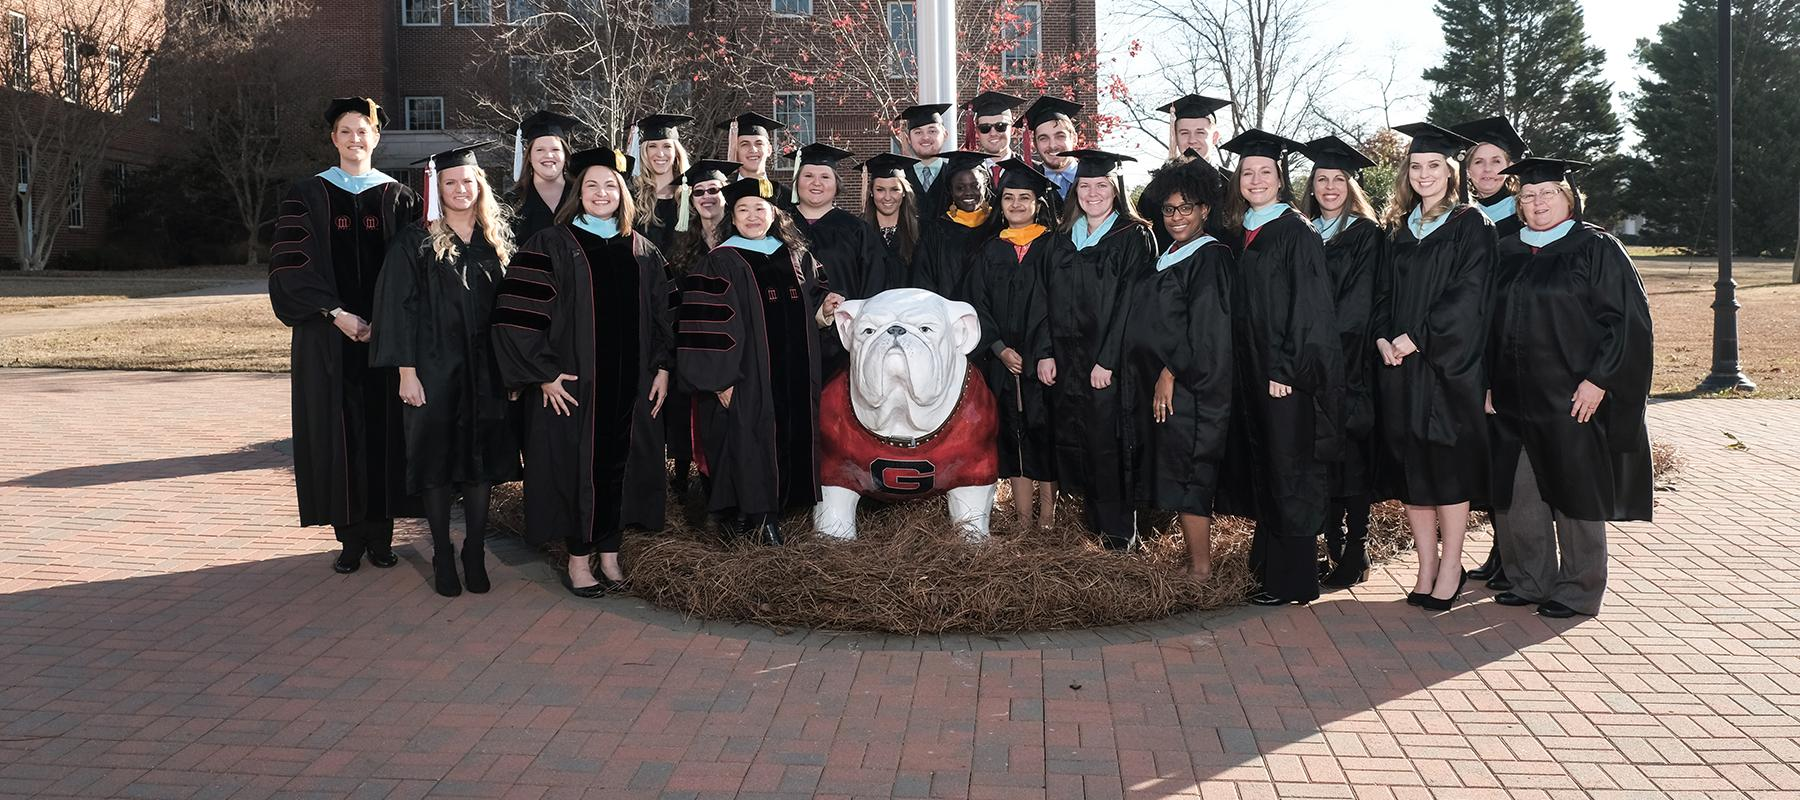 2016 UGA-Griffin grads pose with Dr. Lew Hunnicutt and the Uga statue near the Flynt Building